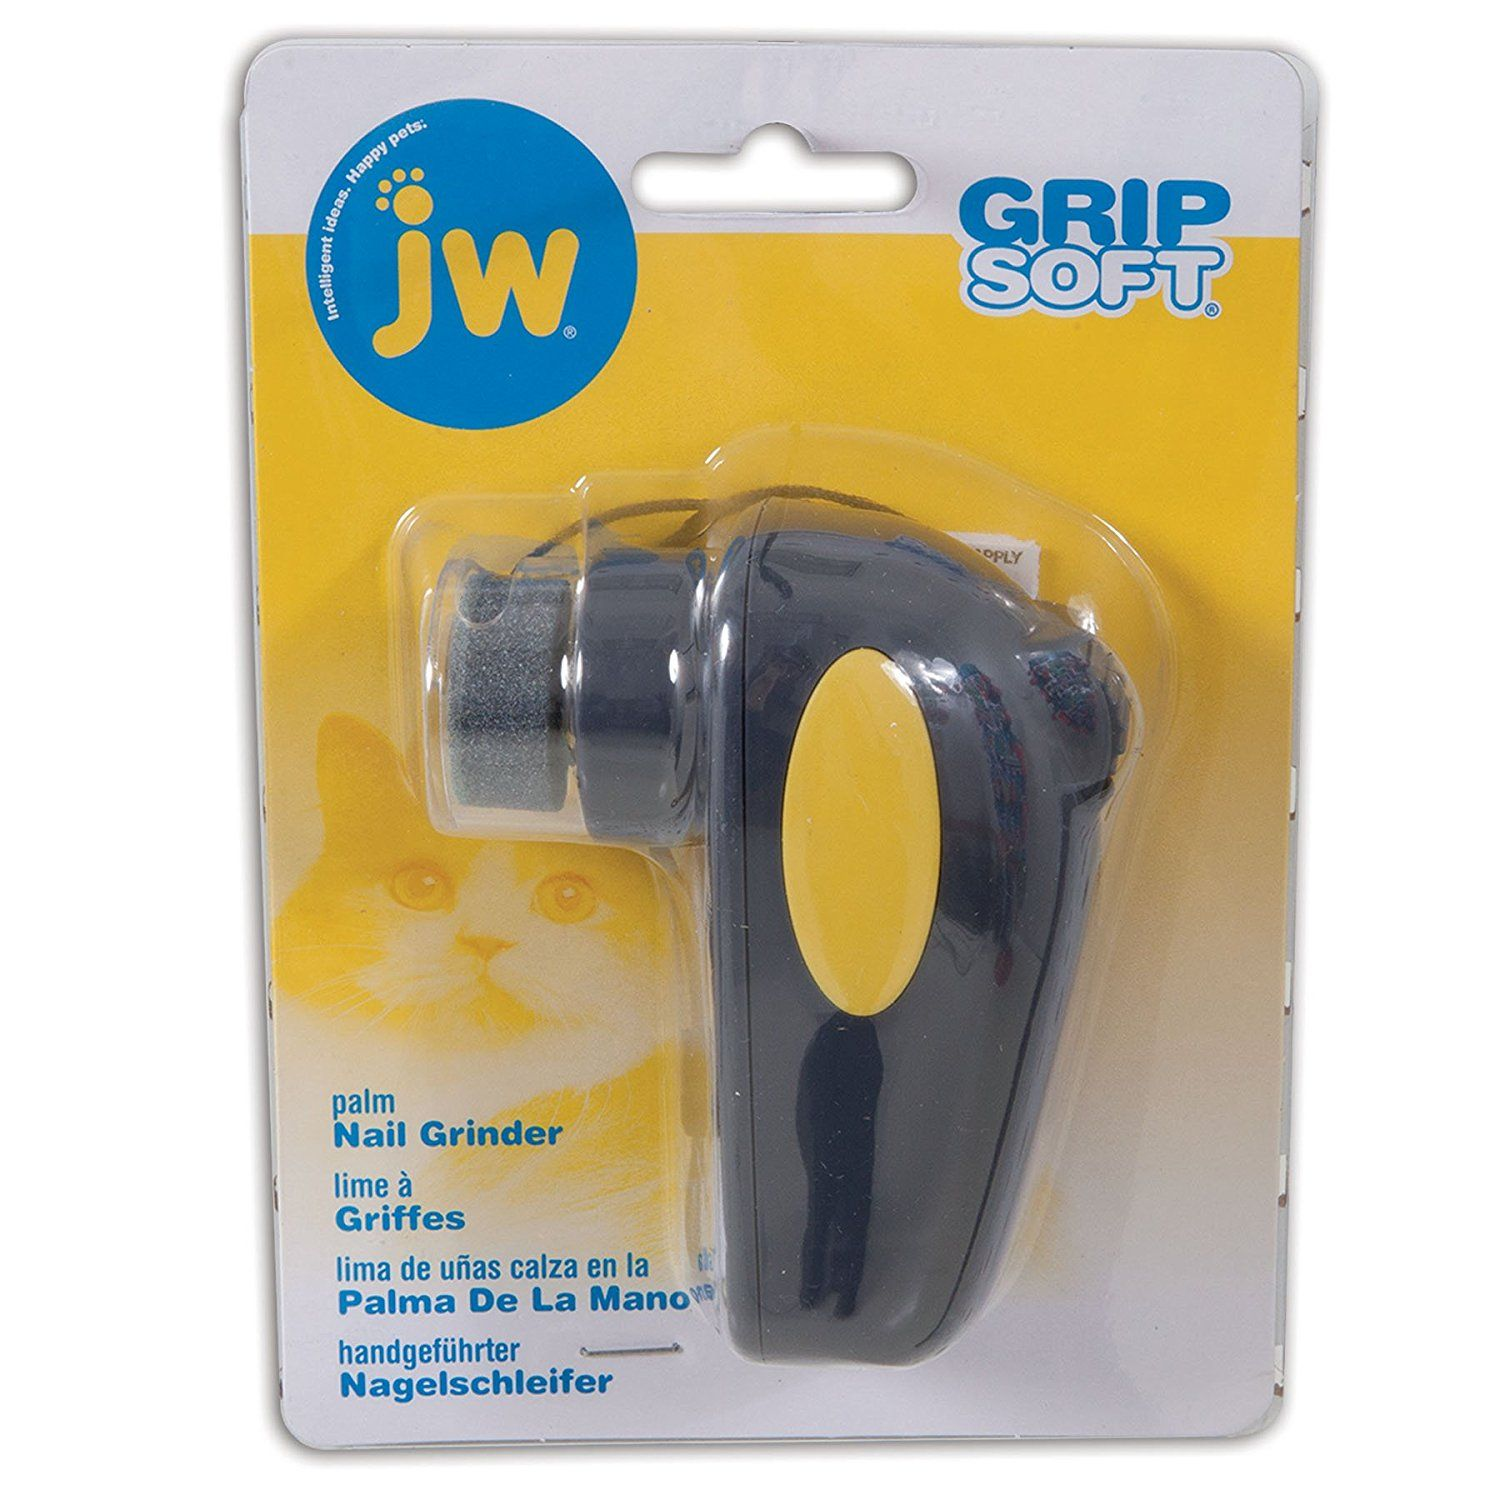 JW Pet Company Palm Nail Grinder for Cat Check this